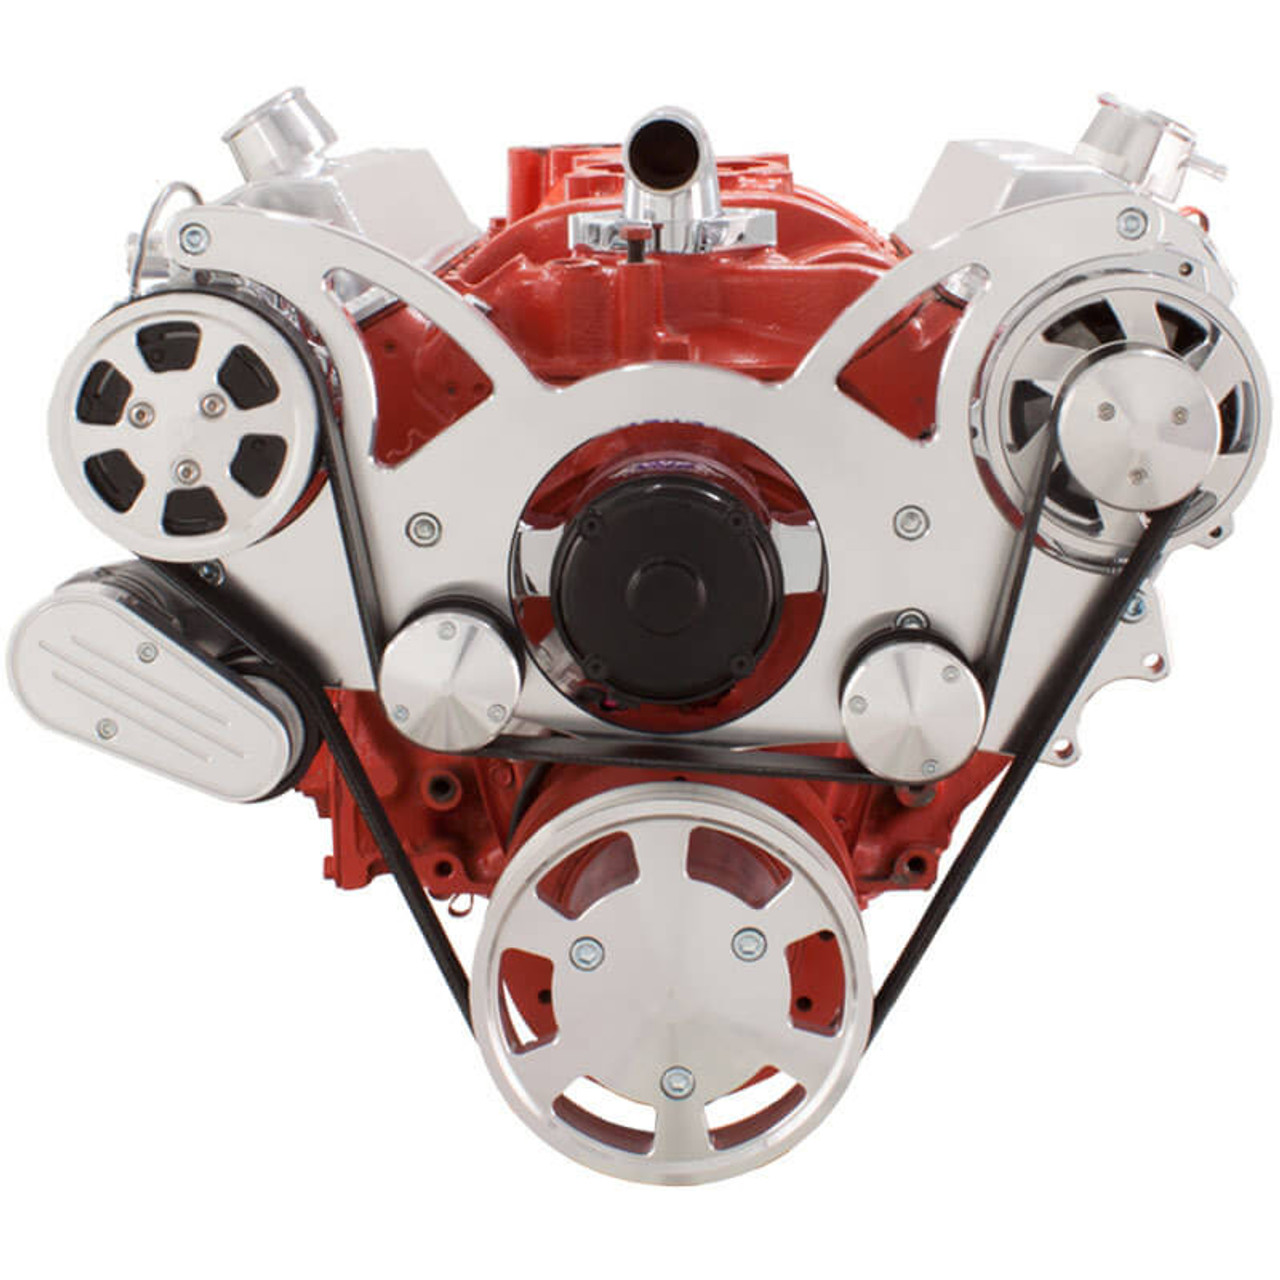 serpentine conversion kit for small block chevy 283 350 400 with ac on 283 externally regulated alternator  [ 1280 x 1280 Pixel ]